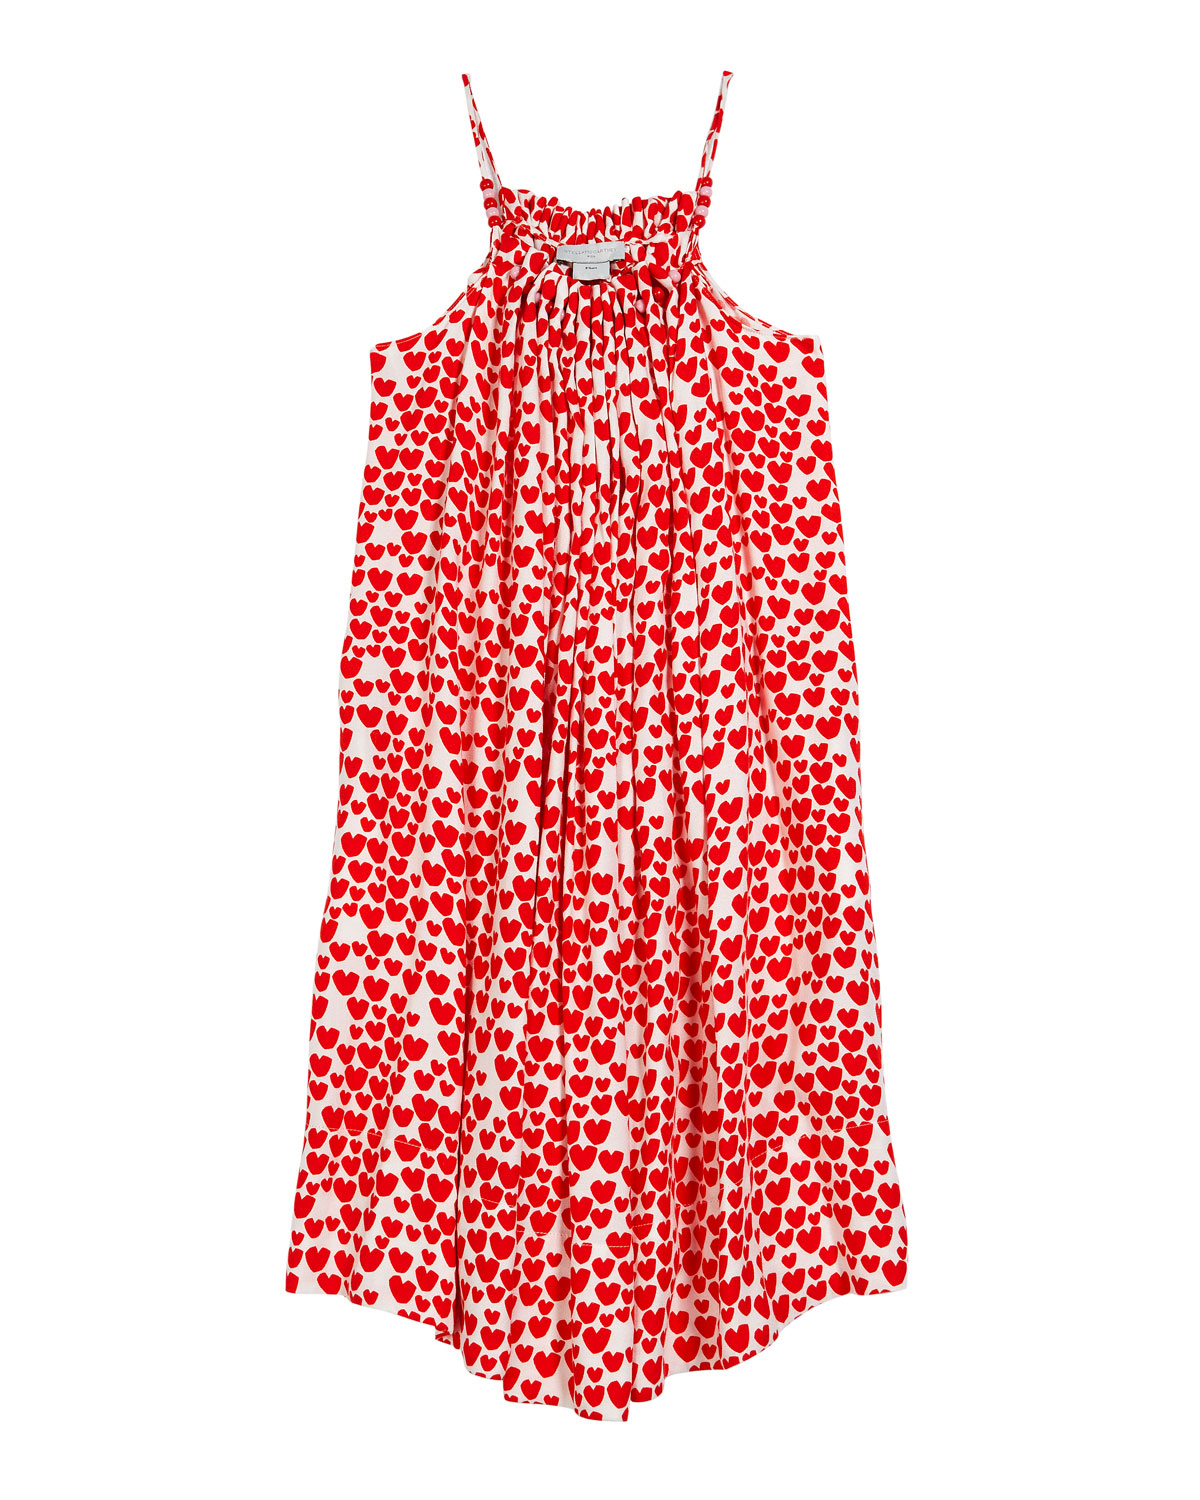 Stella McCartney Kids Girl's Heart Print Sleeveless Dress, Size 4-14